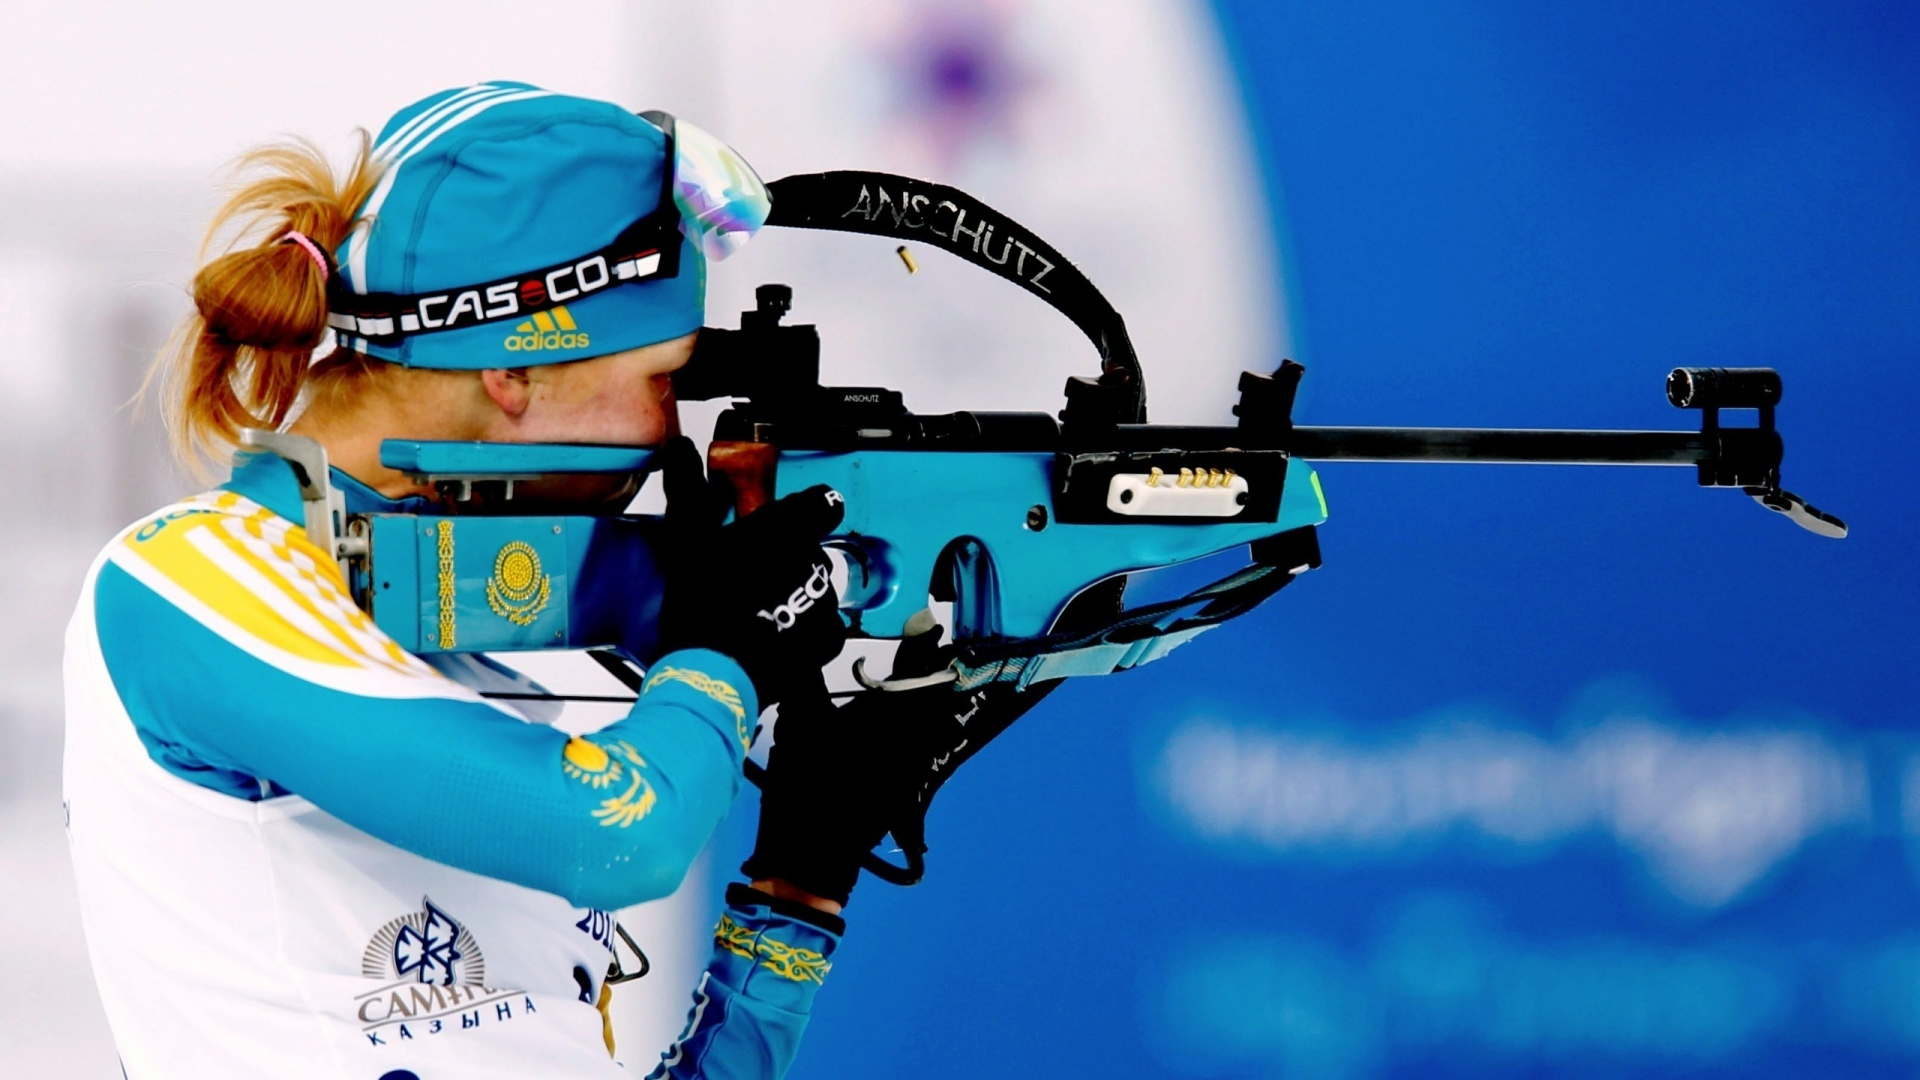 Full HD Wallpaper biathlon khrustaleva elena rifle Desktop 1920x1080